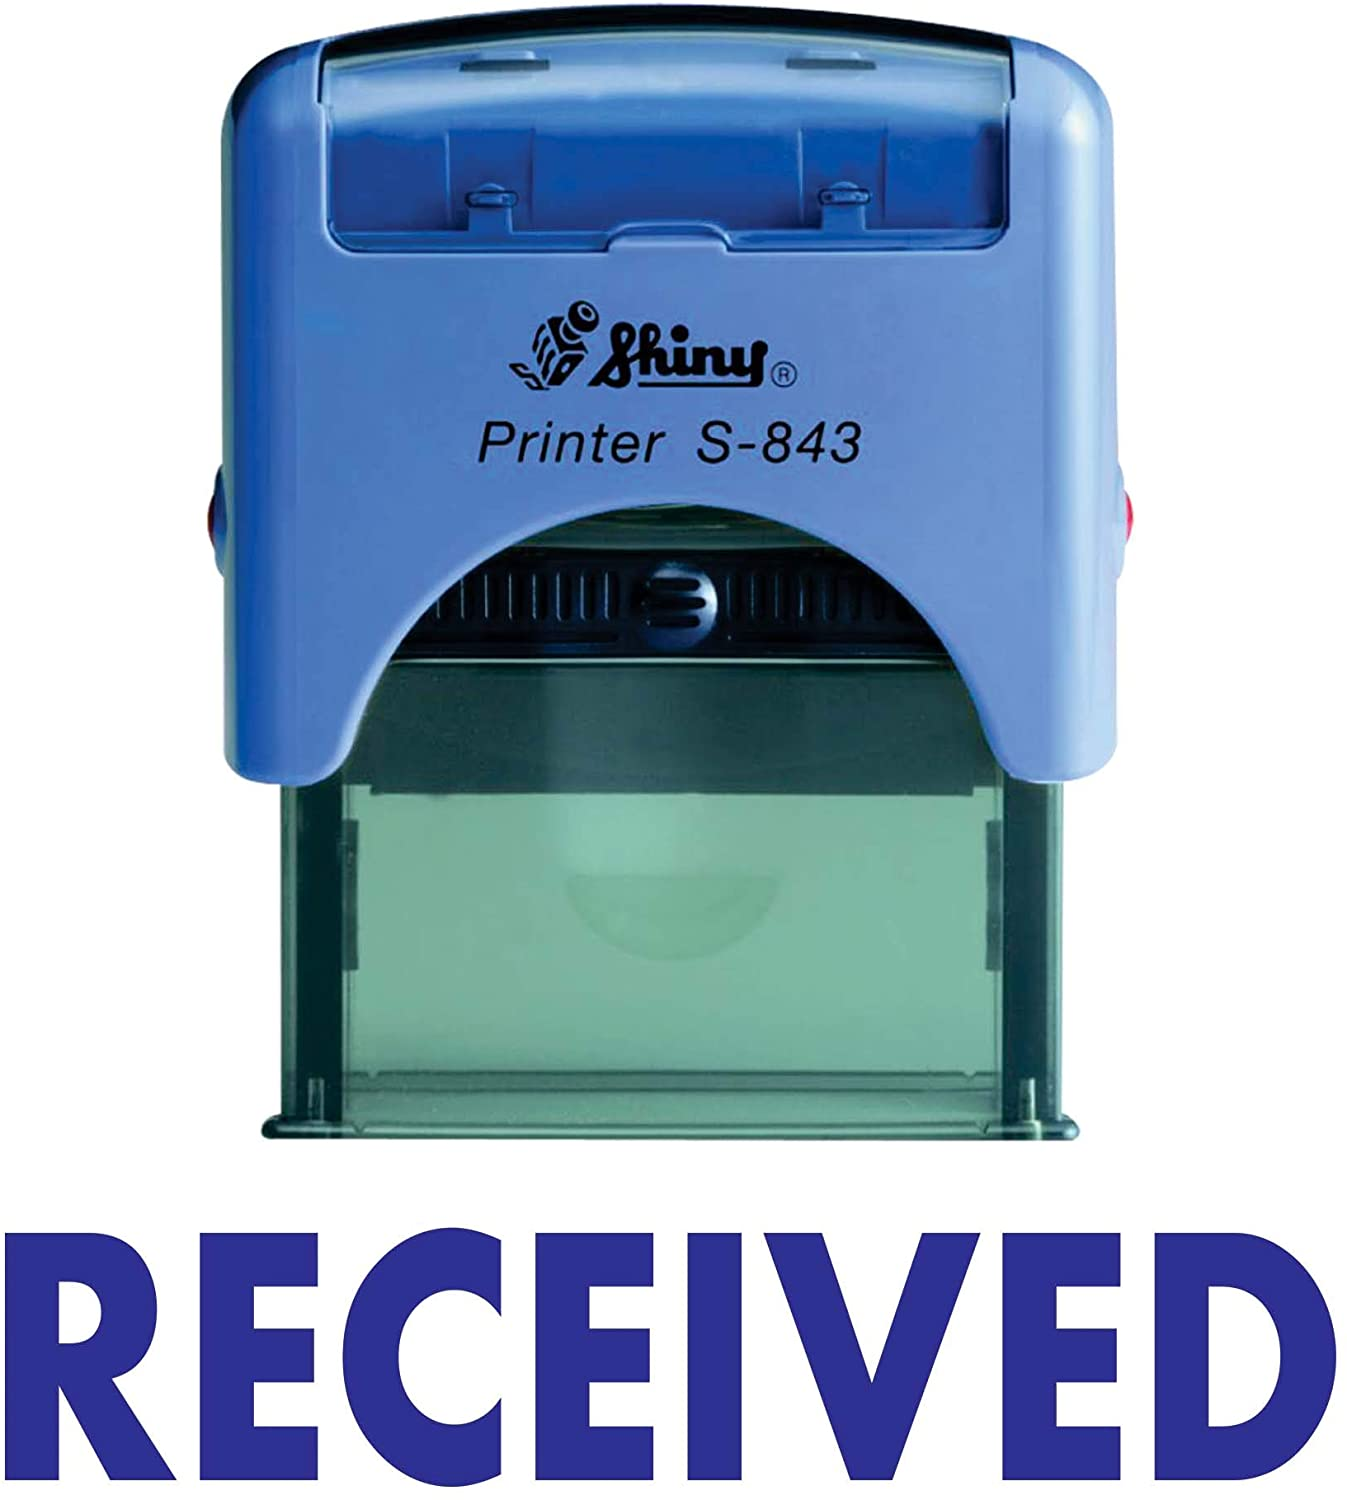 Received Shiny Self Inking Rubber Stamp Office Stationary